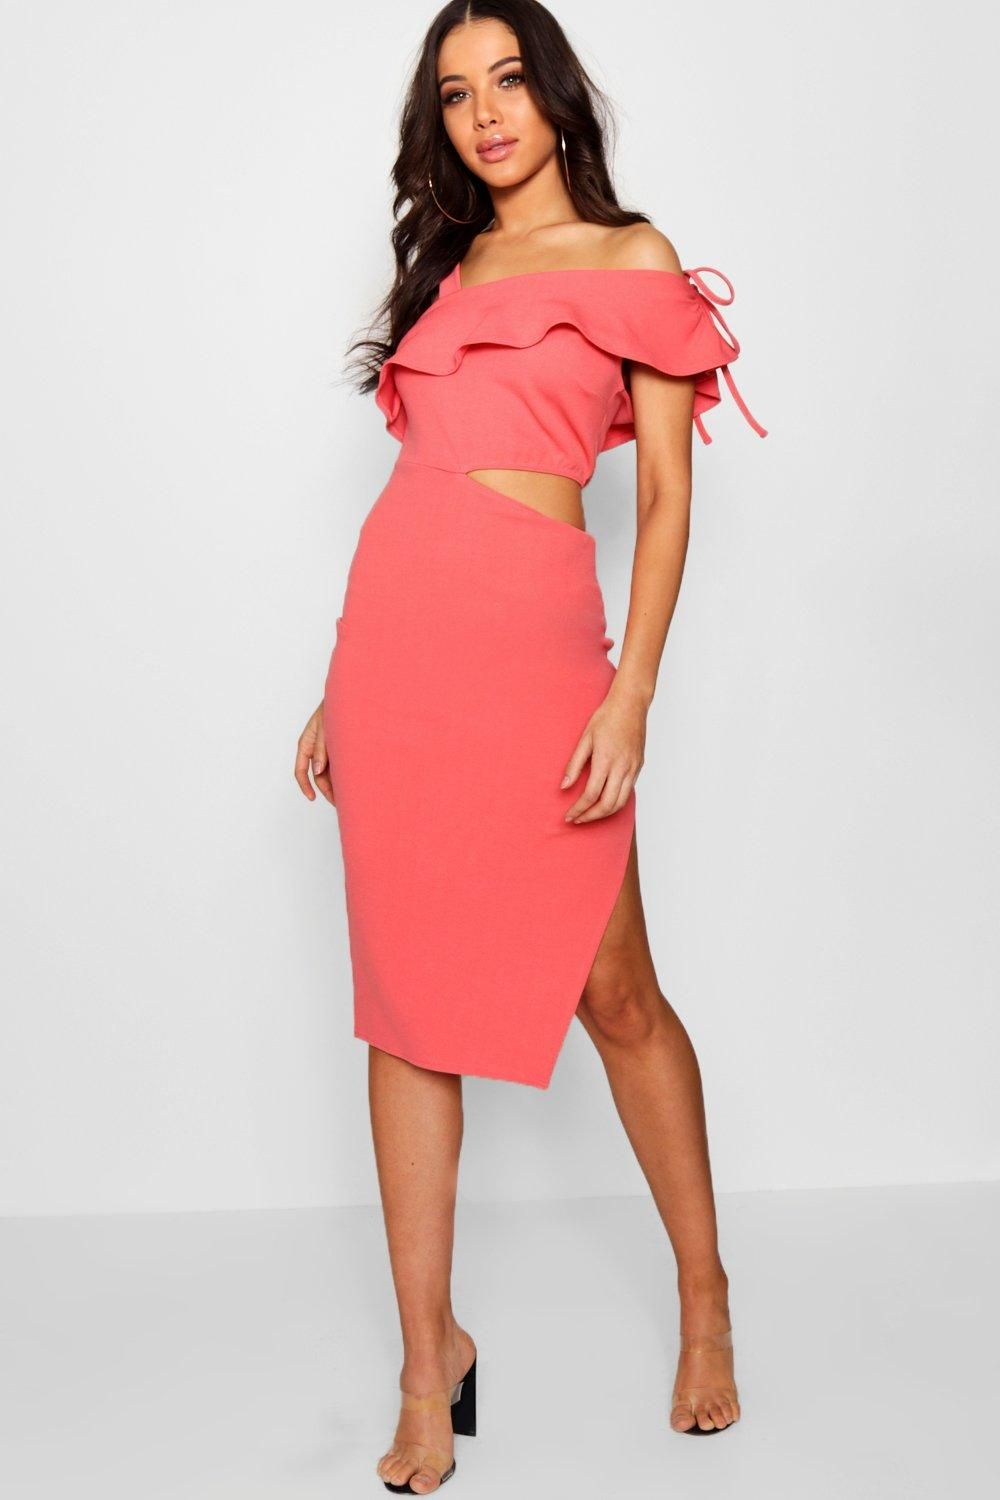 d2d95490e2c5 Click here to find out about the Jess Ruffle One Shoulder Cut Out Midi Dress  from Boohoo, part of our latest Boohoo Boutique collection ready to shop  online ...